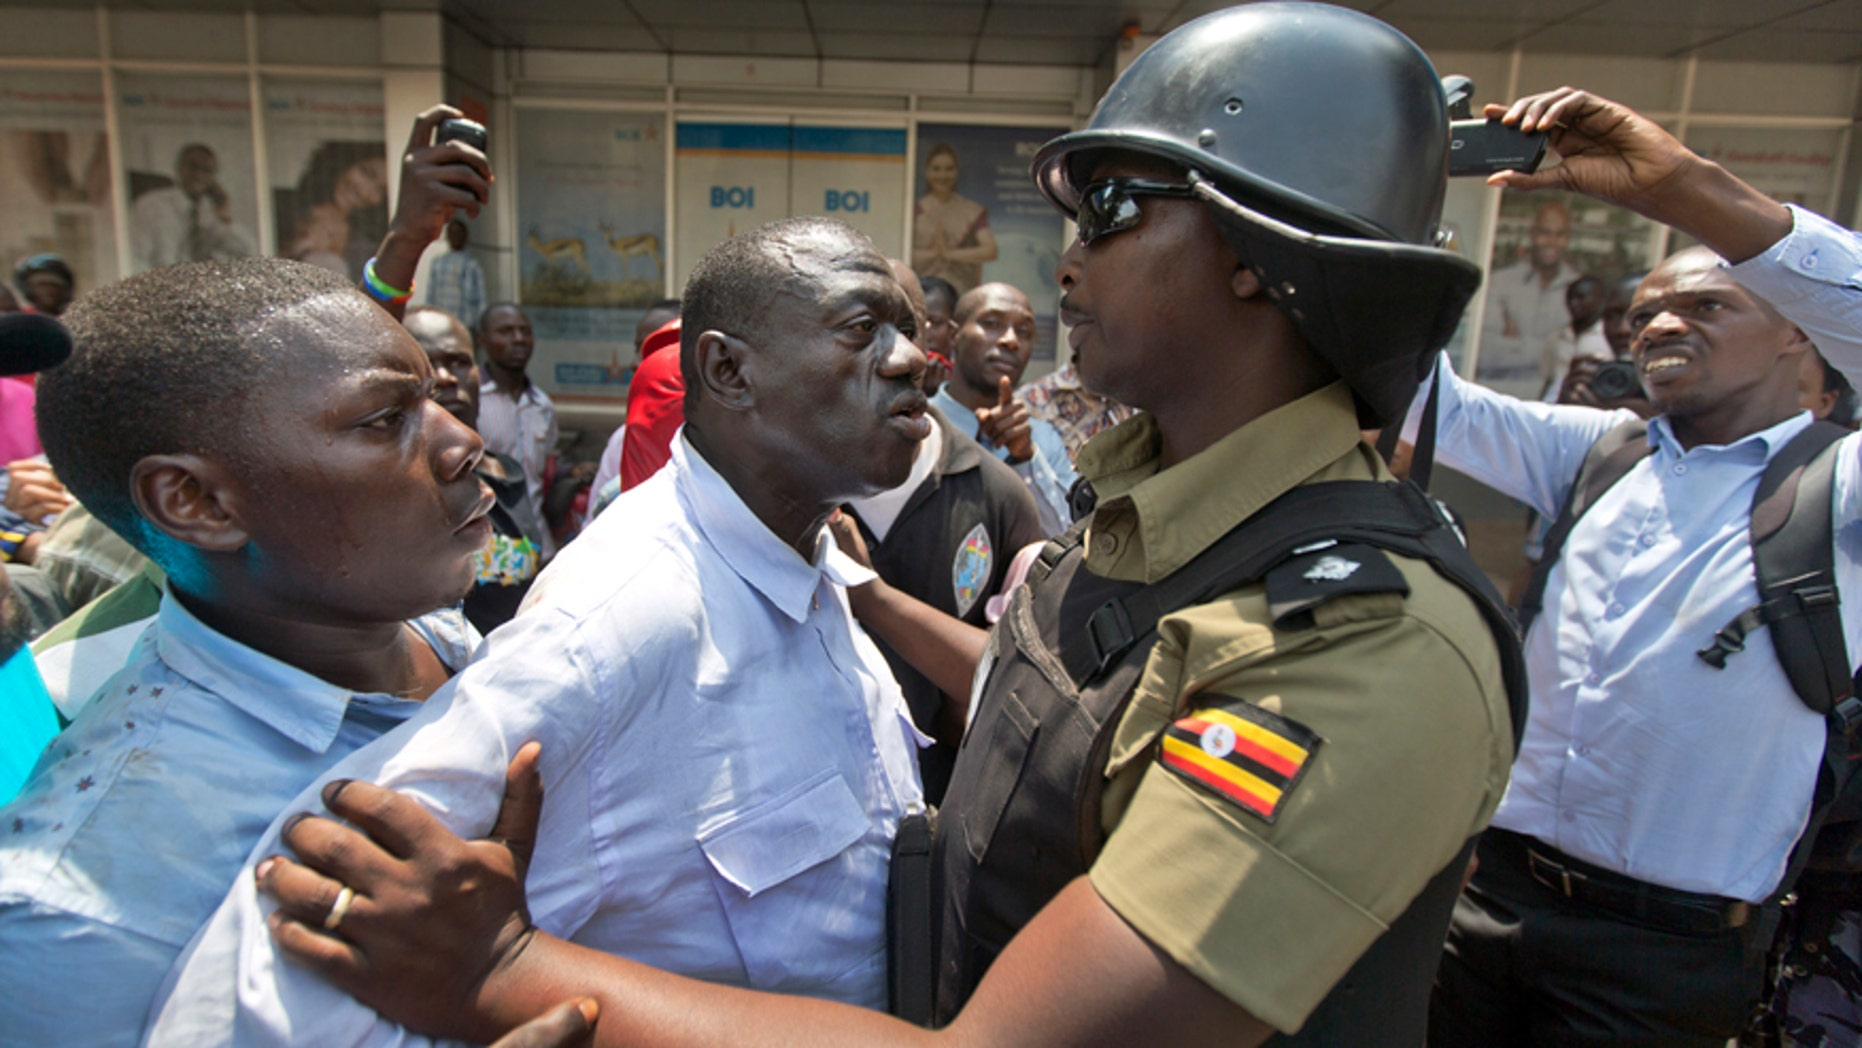 Feb. 15, 2016: Leading opposition leader and presidential candidate Kizza Besigye, center, is grabbed before being arrested by riot police in downtown Kampala, Uganda.